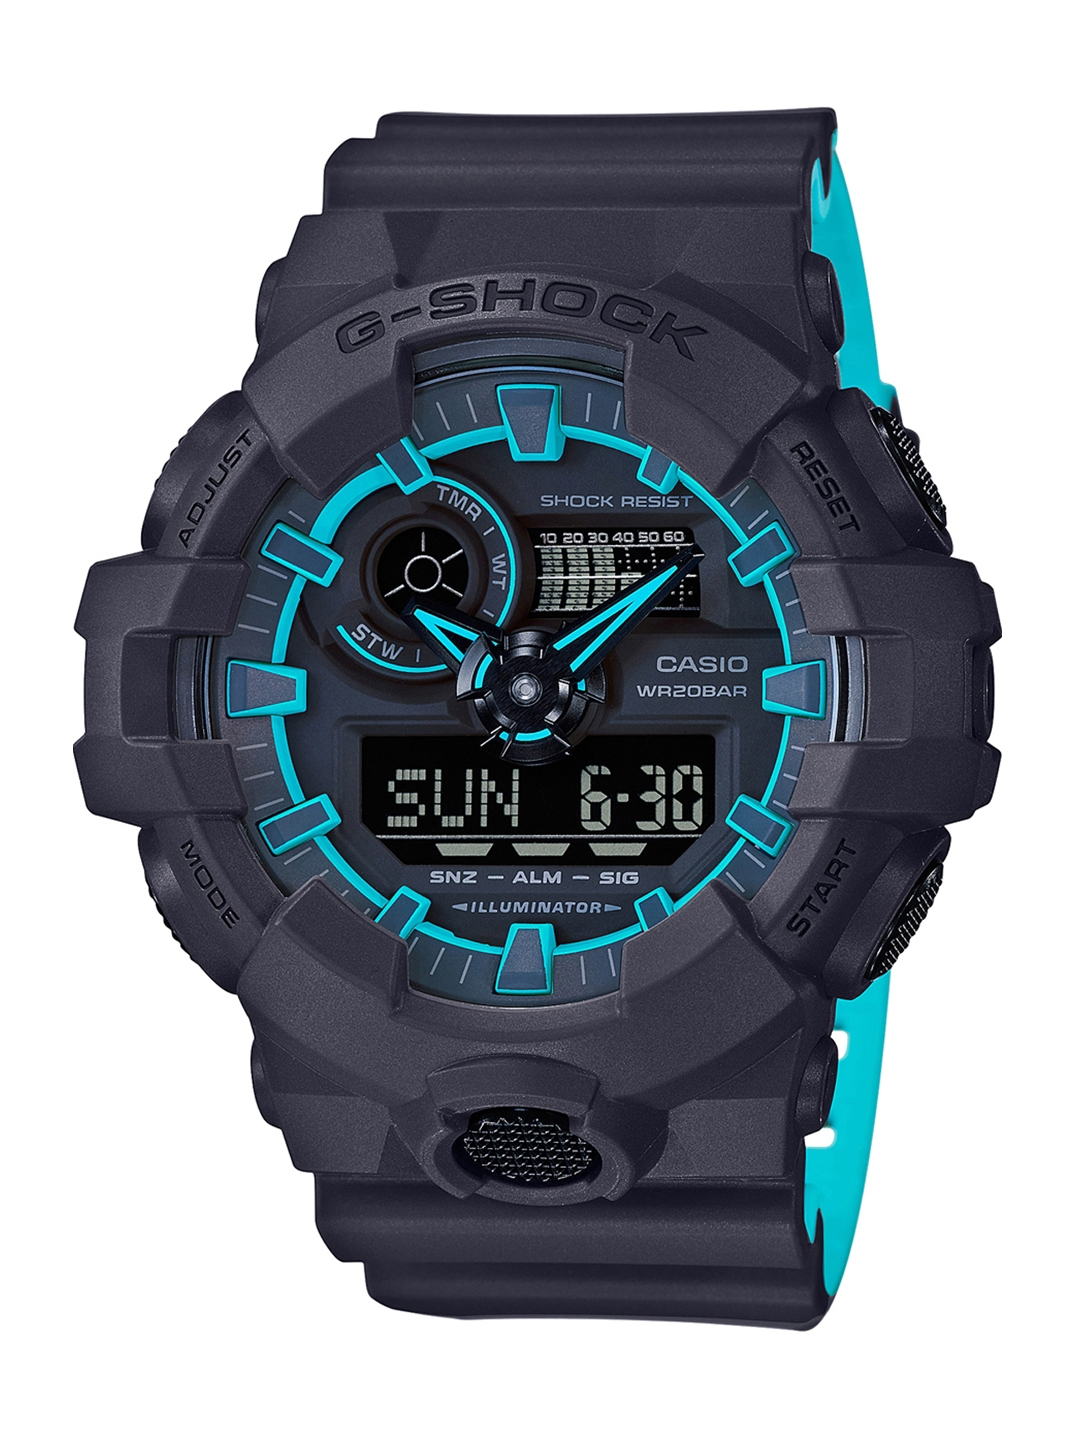 CASIO G Shock Men Black Blue Analogue and Digital Watch G762 GA 700SE 1A2DR